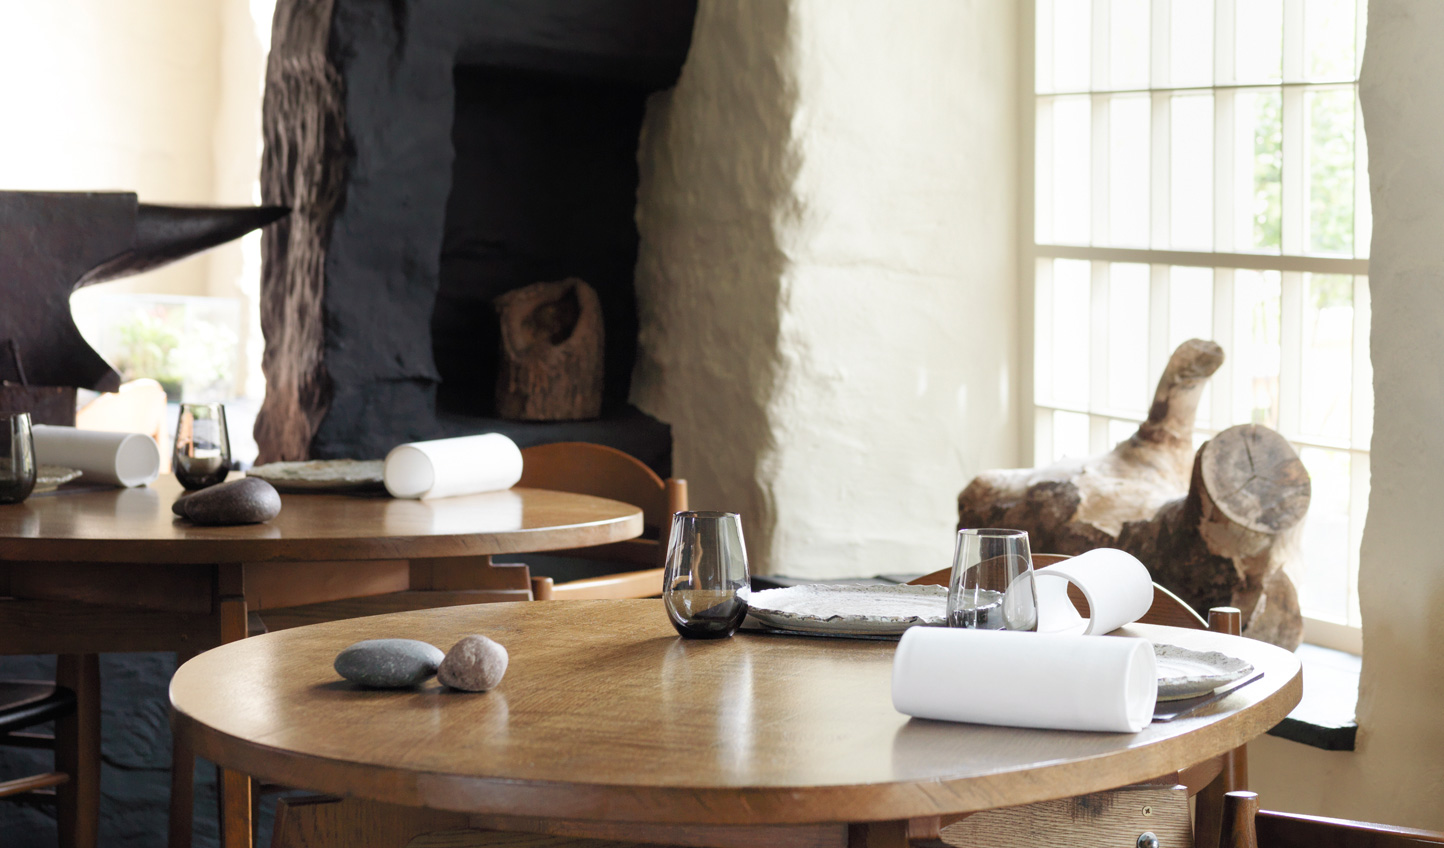 Tuck in to some world-class British cuisine at L'Enclume